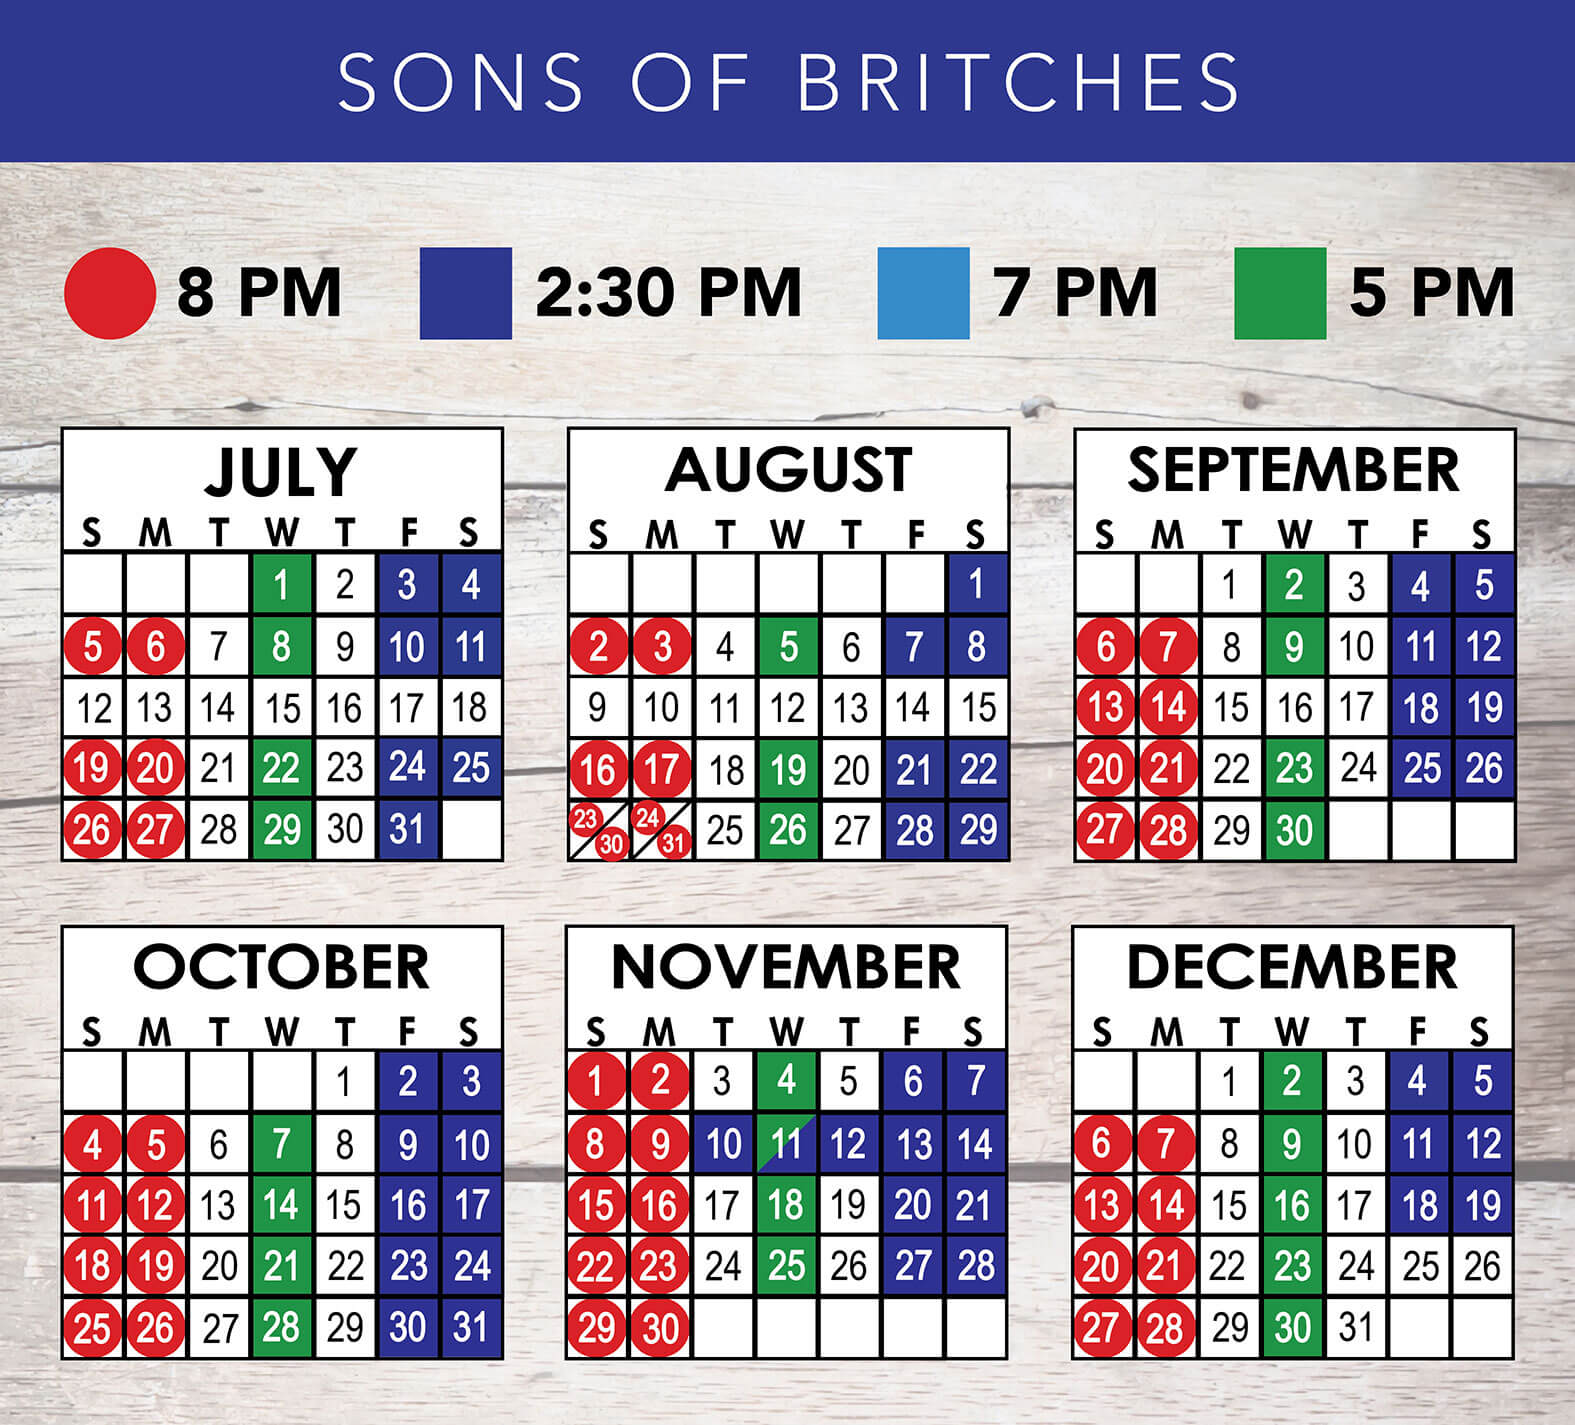 Sons of Britches 2020 Schedule